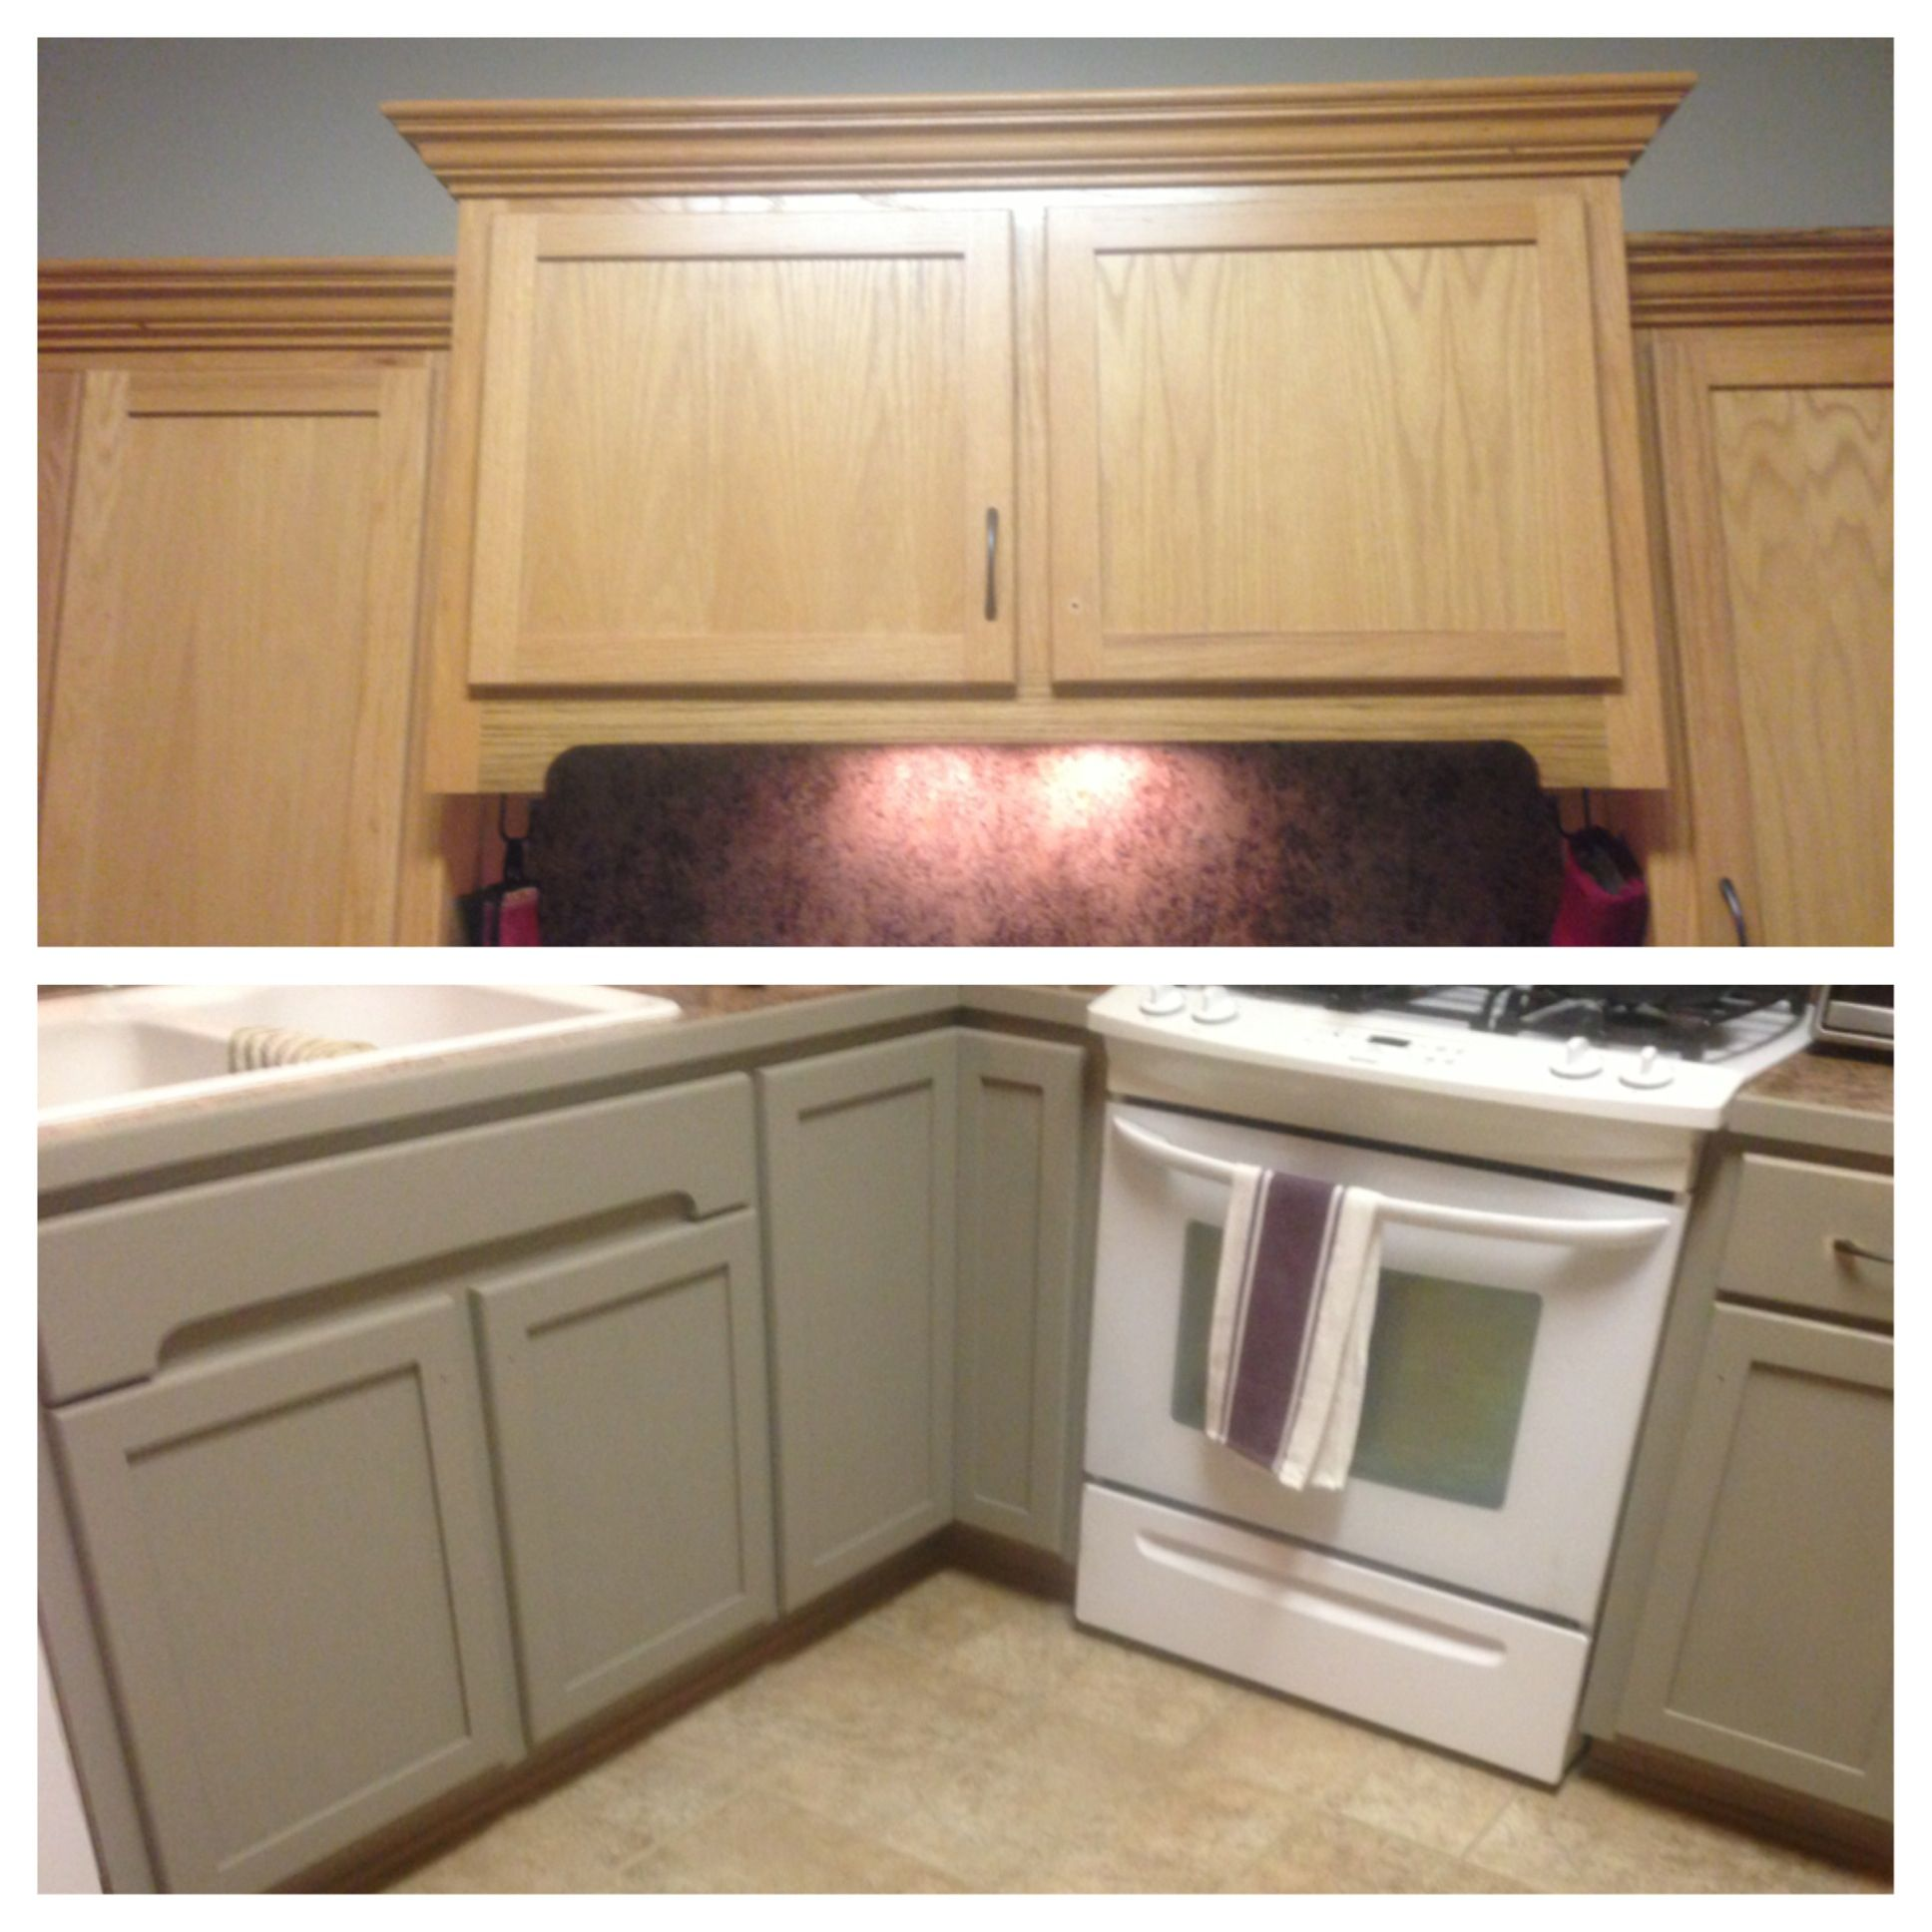 In The Process Of Updating My Kitchen Cabinets With Annie Sloan S French Linen Chalk Paint Kitchen Cabinets Annie Sloan Kitchen Cabinets Kitchen Design